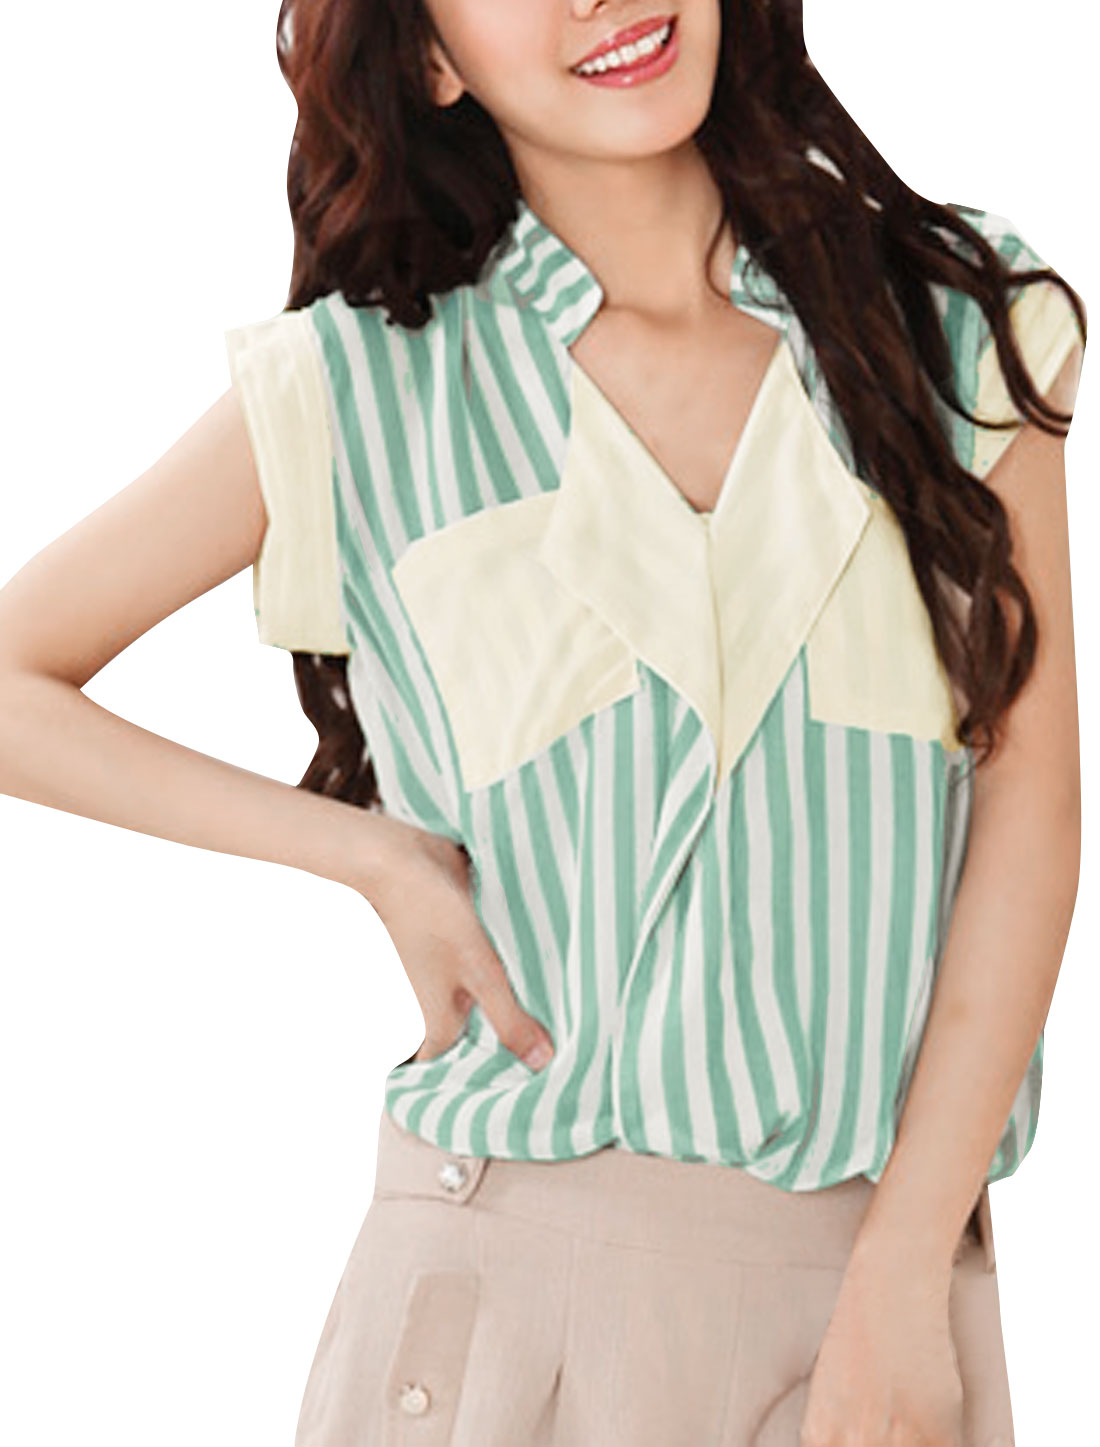 Pullover Chic Green Beige Straipes Pattern Casual Blouse M for Lady